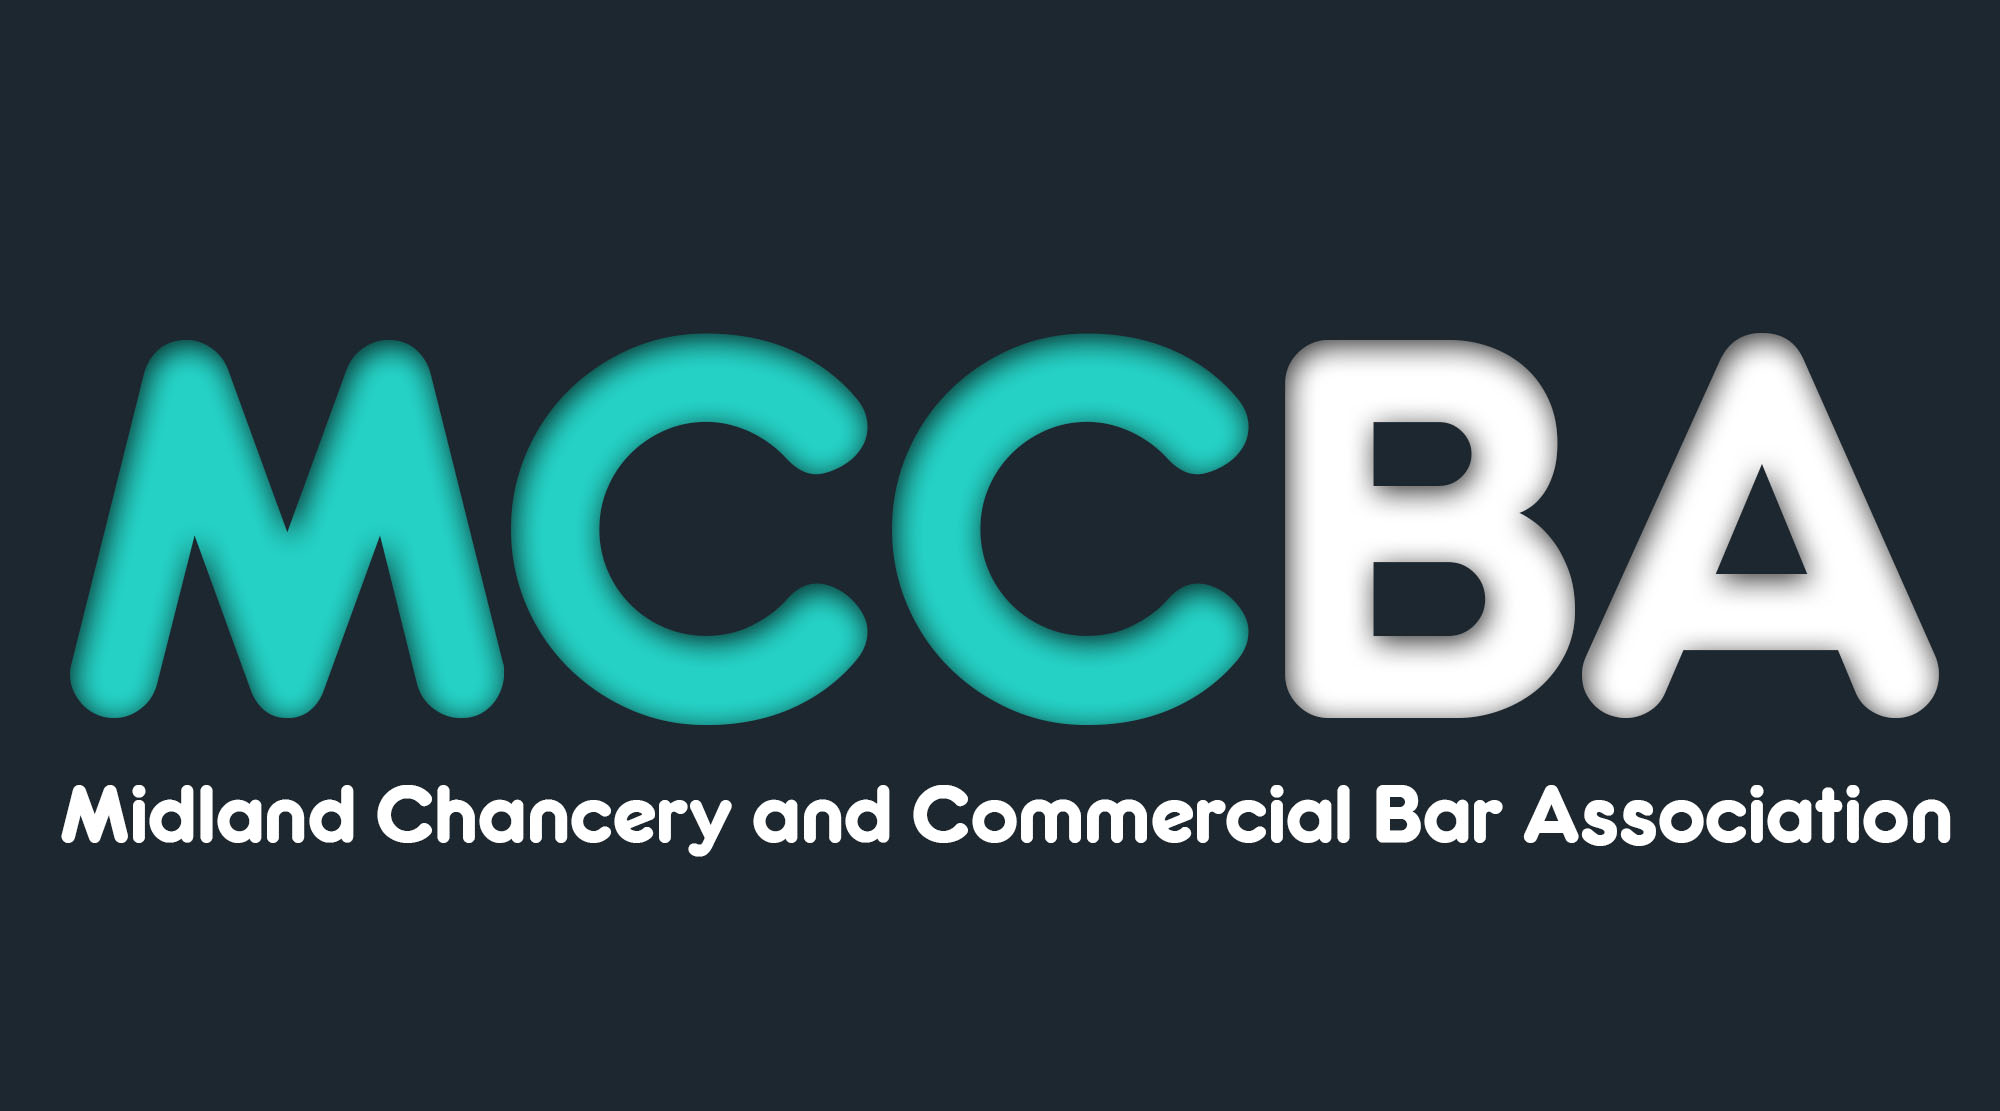 The Midland Chancery and Commercial Bar Association